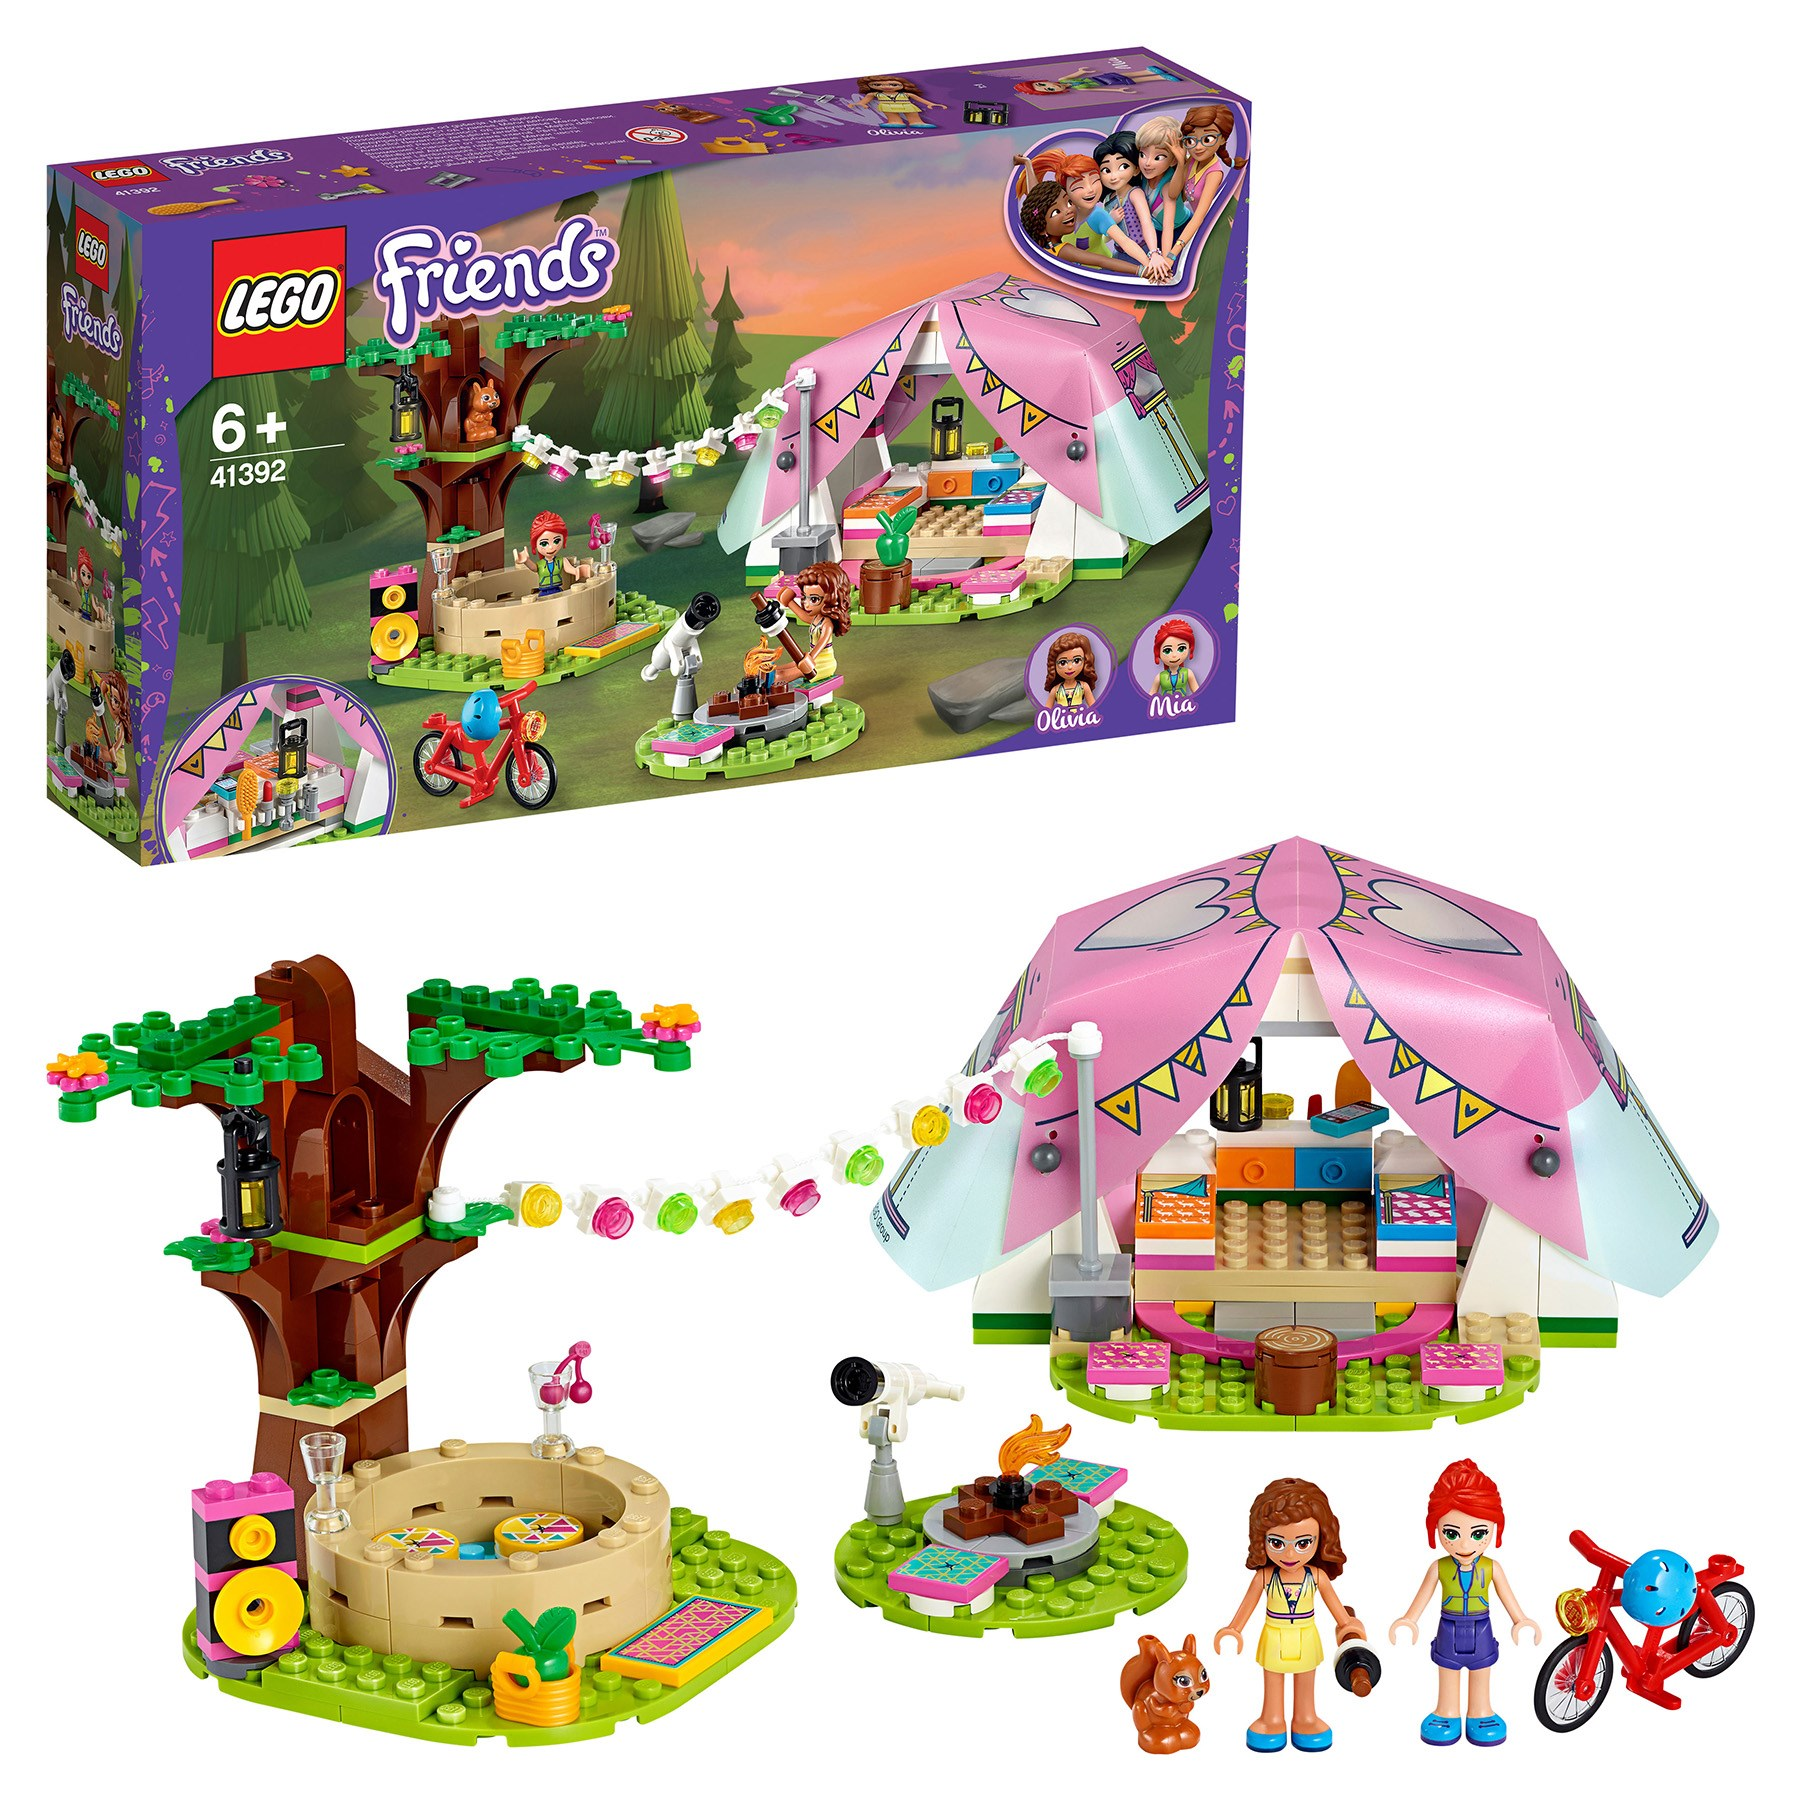 Designer Lego Friends 41392 Luxury Camping